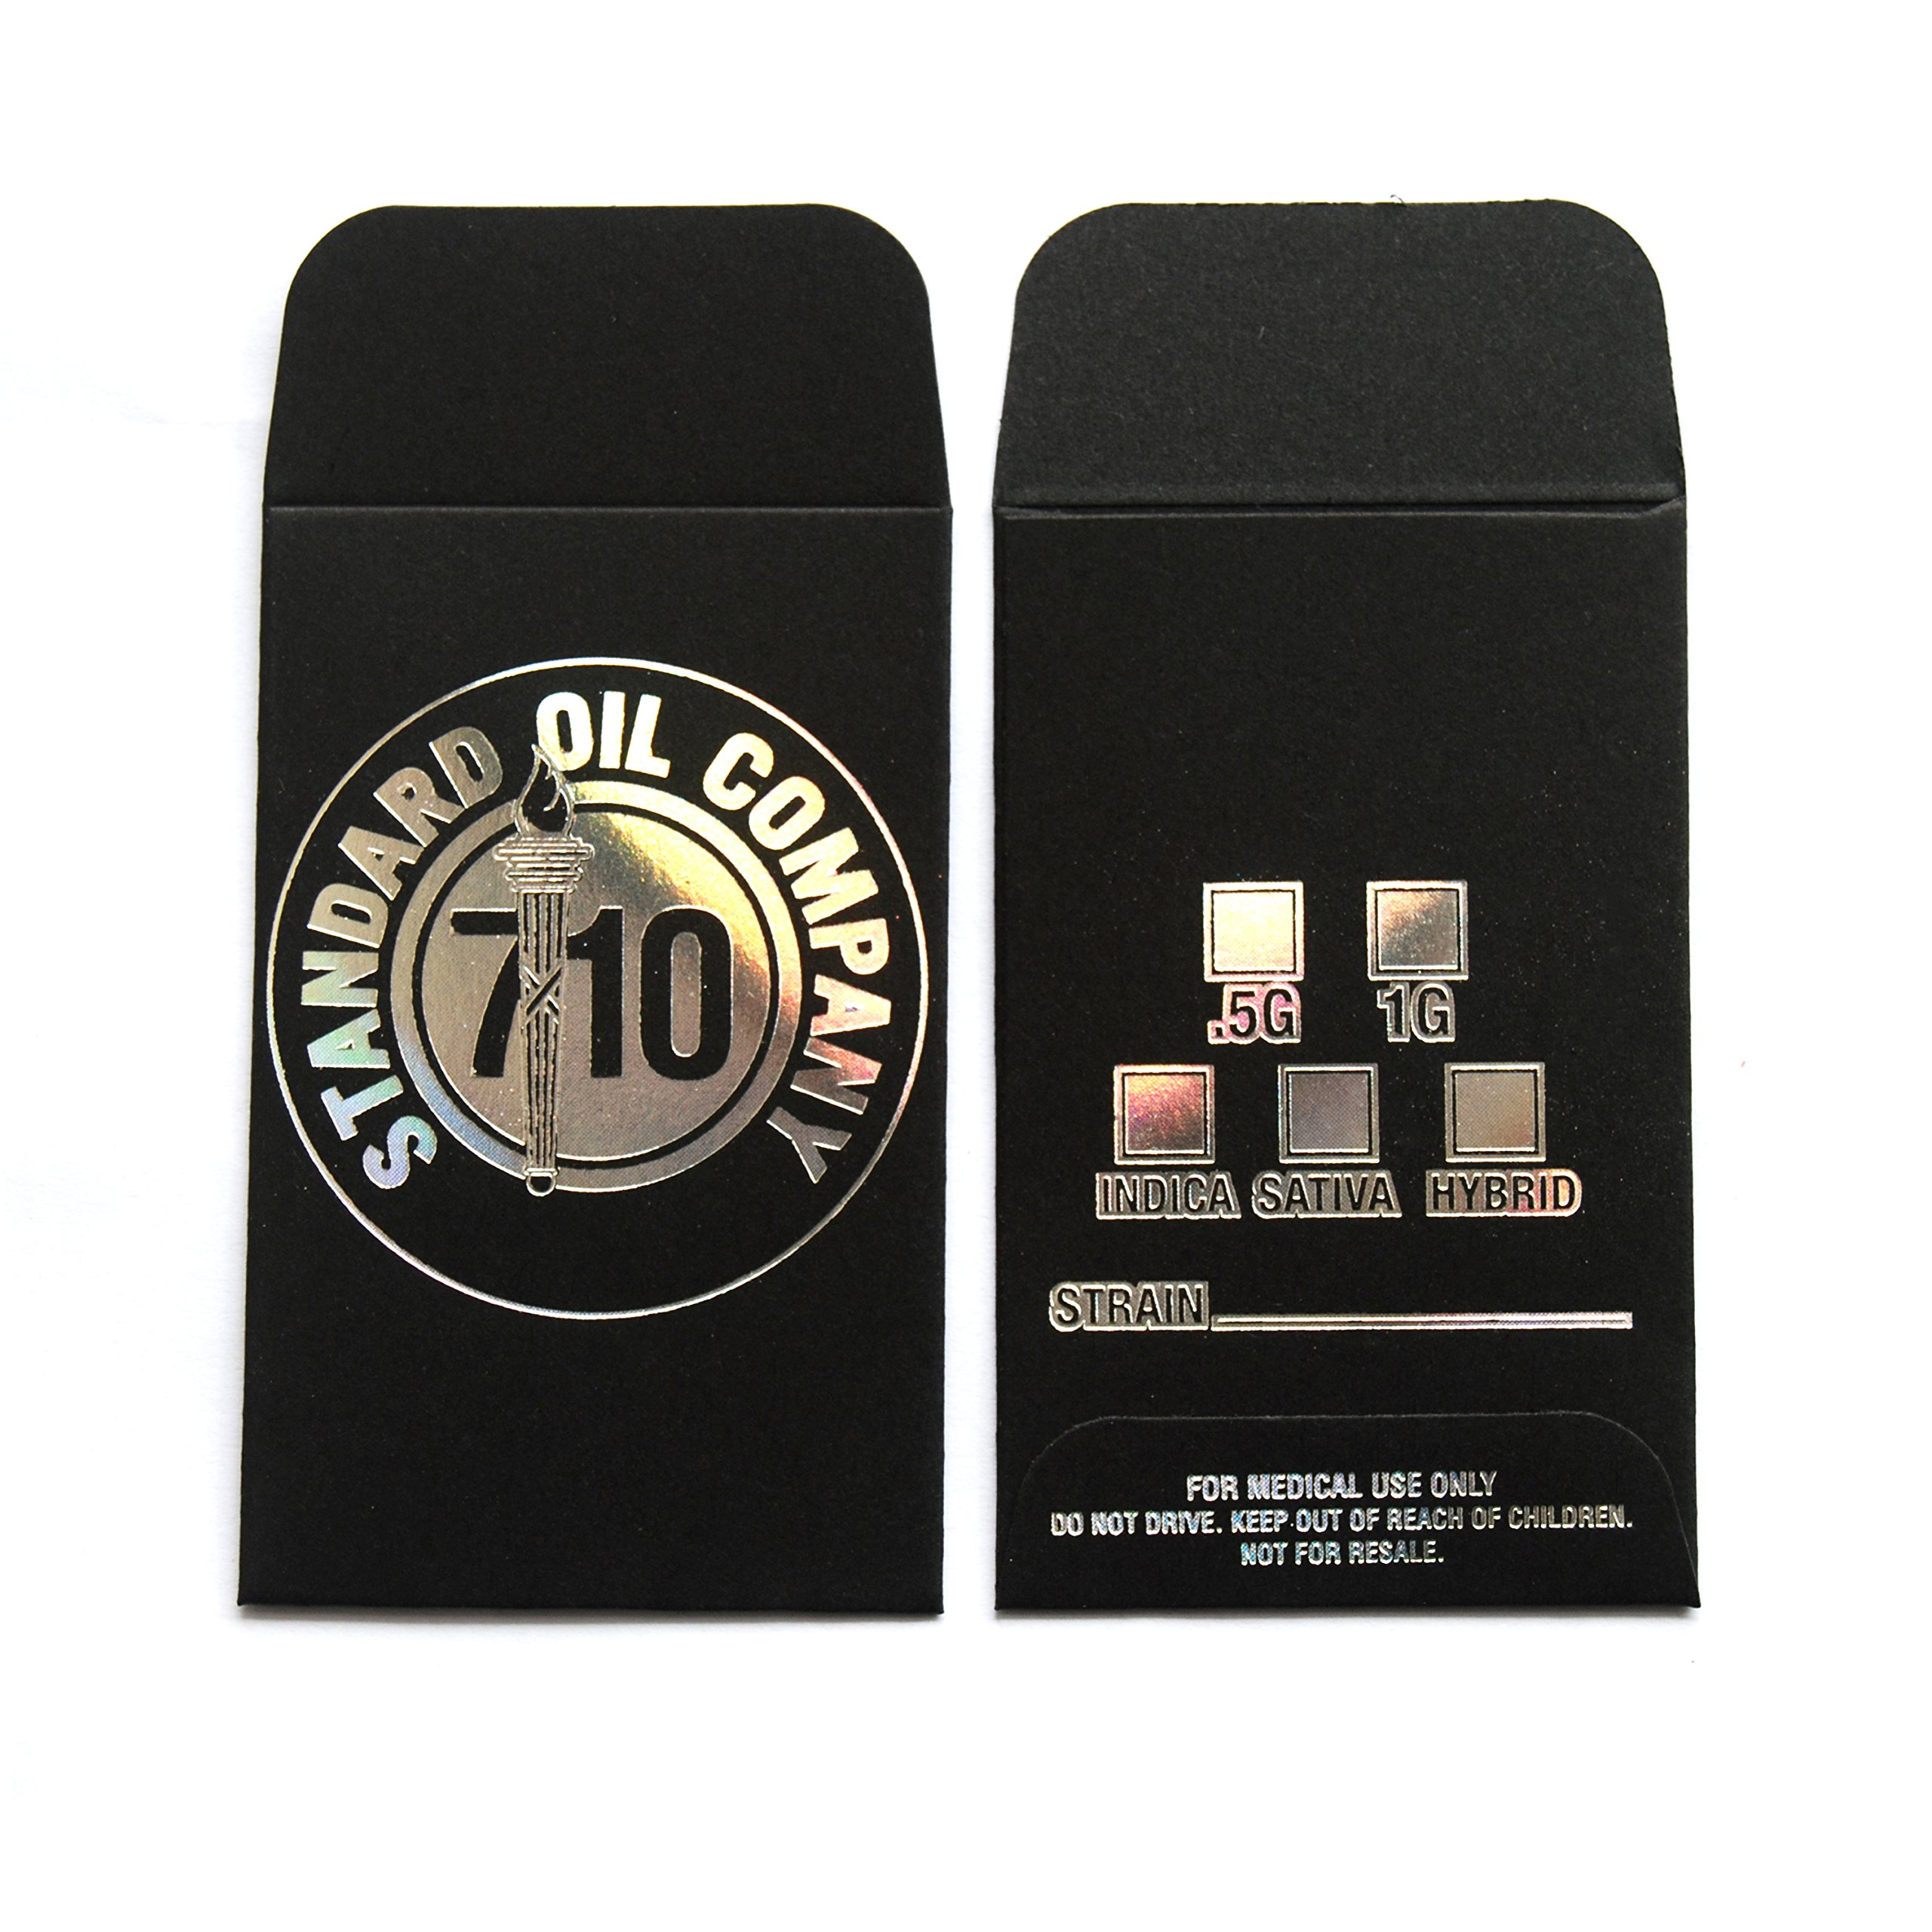 100 Black Holographic Silver 710 Standard Company Oil Wax Extract Coin Foil Envelopes 2.25'' X 3.5'' #006 by Shatter Labels (Image #2)